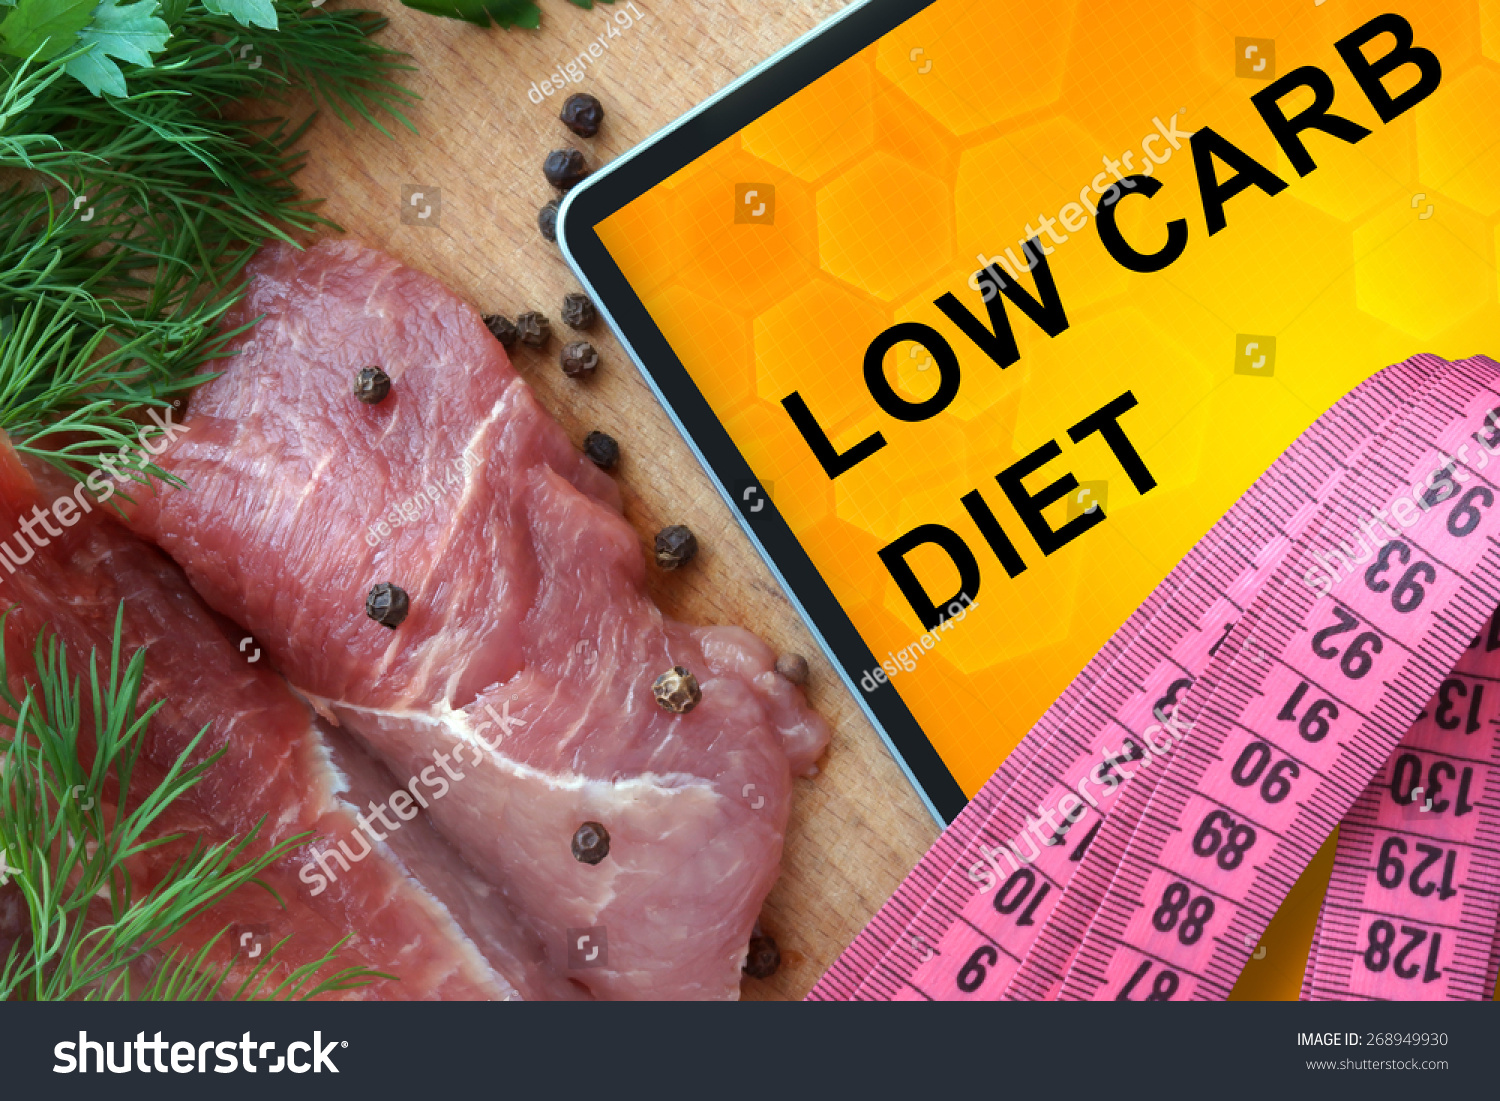 Tablet with low carb diet and fresh meat  on wooden board #268949930